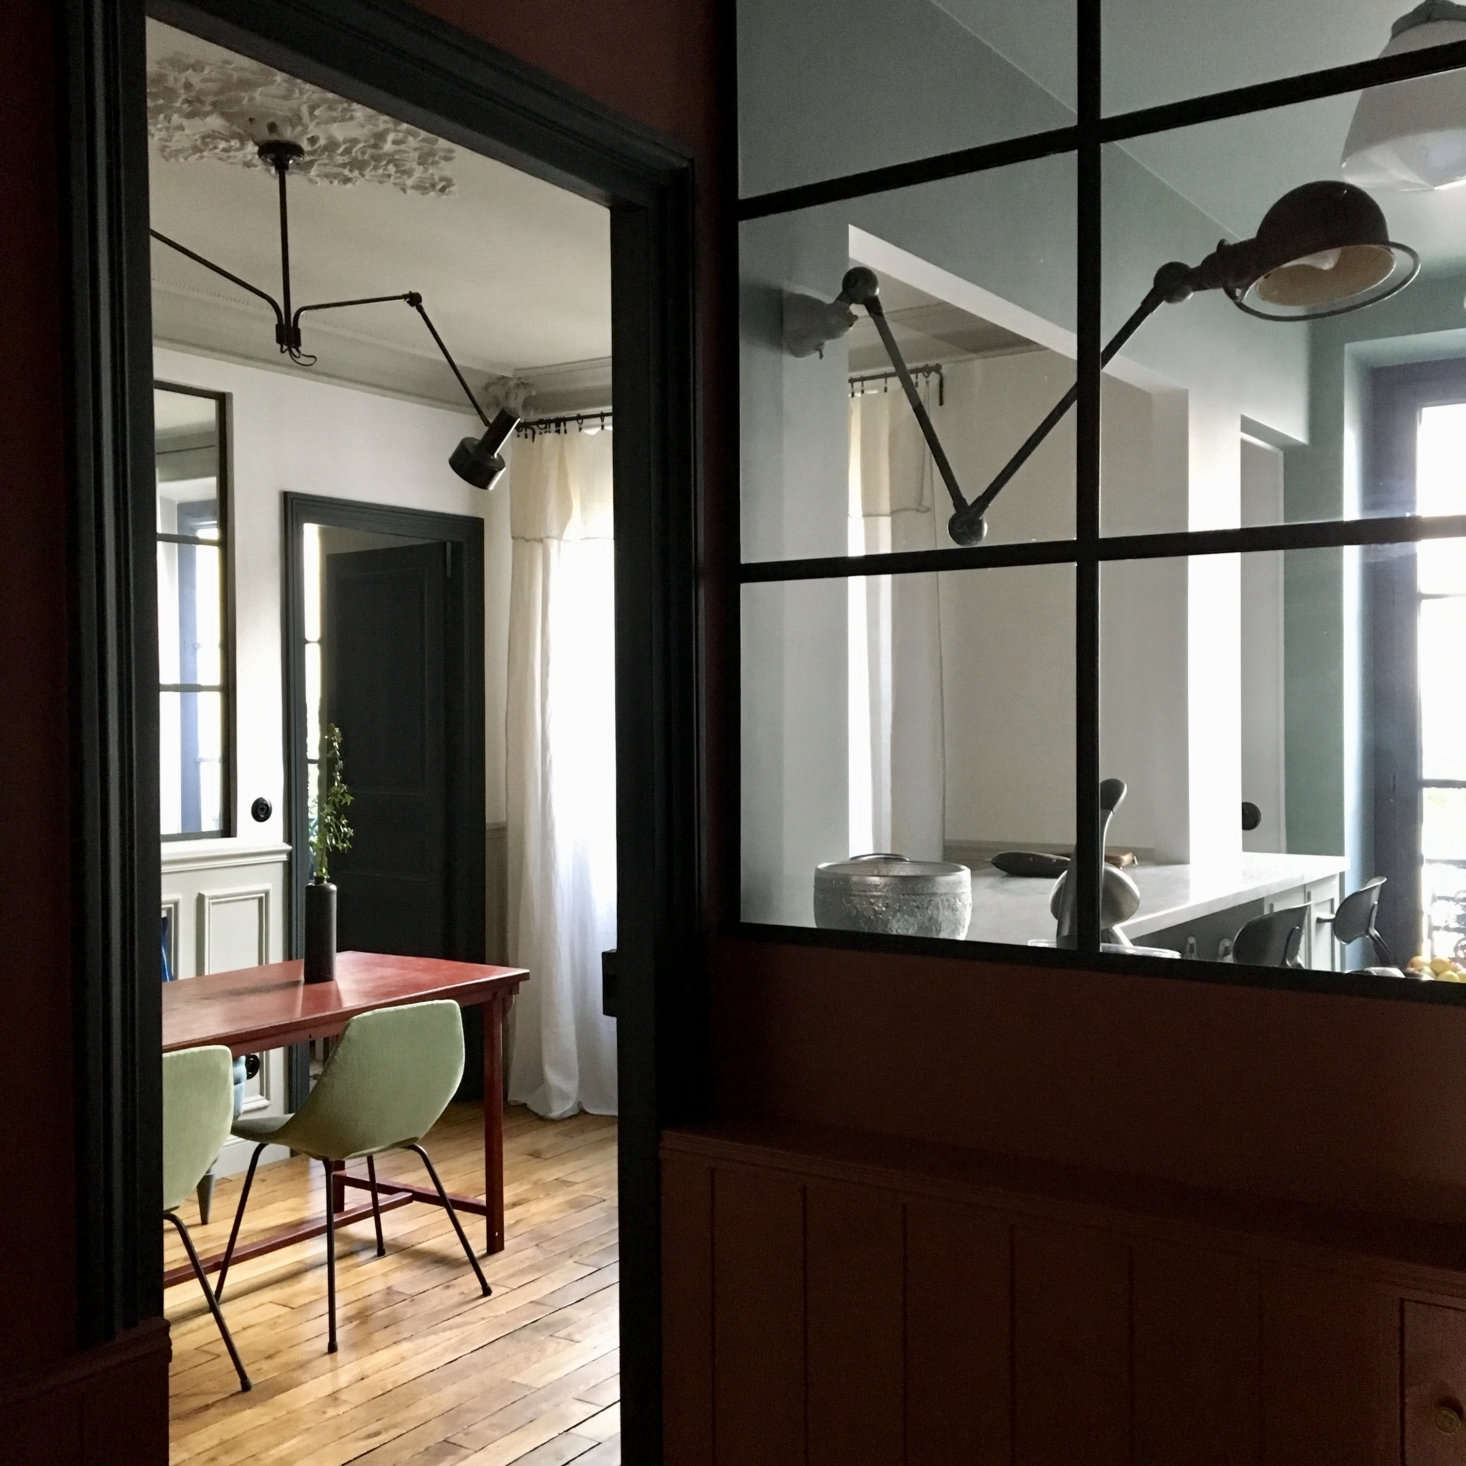 Home at the Office: Designer Marianne Evennou's Paris Work Quarters and Pied-à-Terre